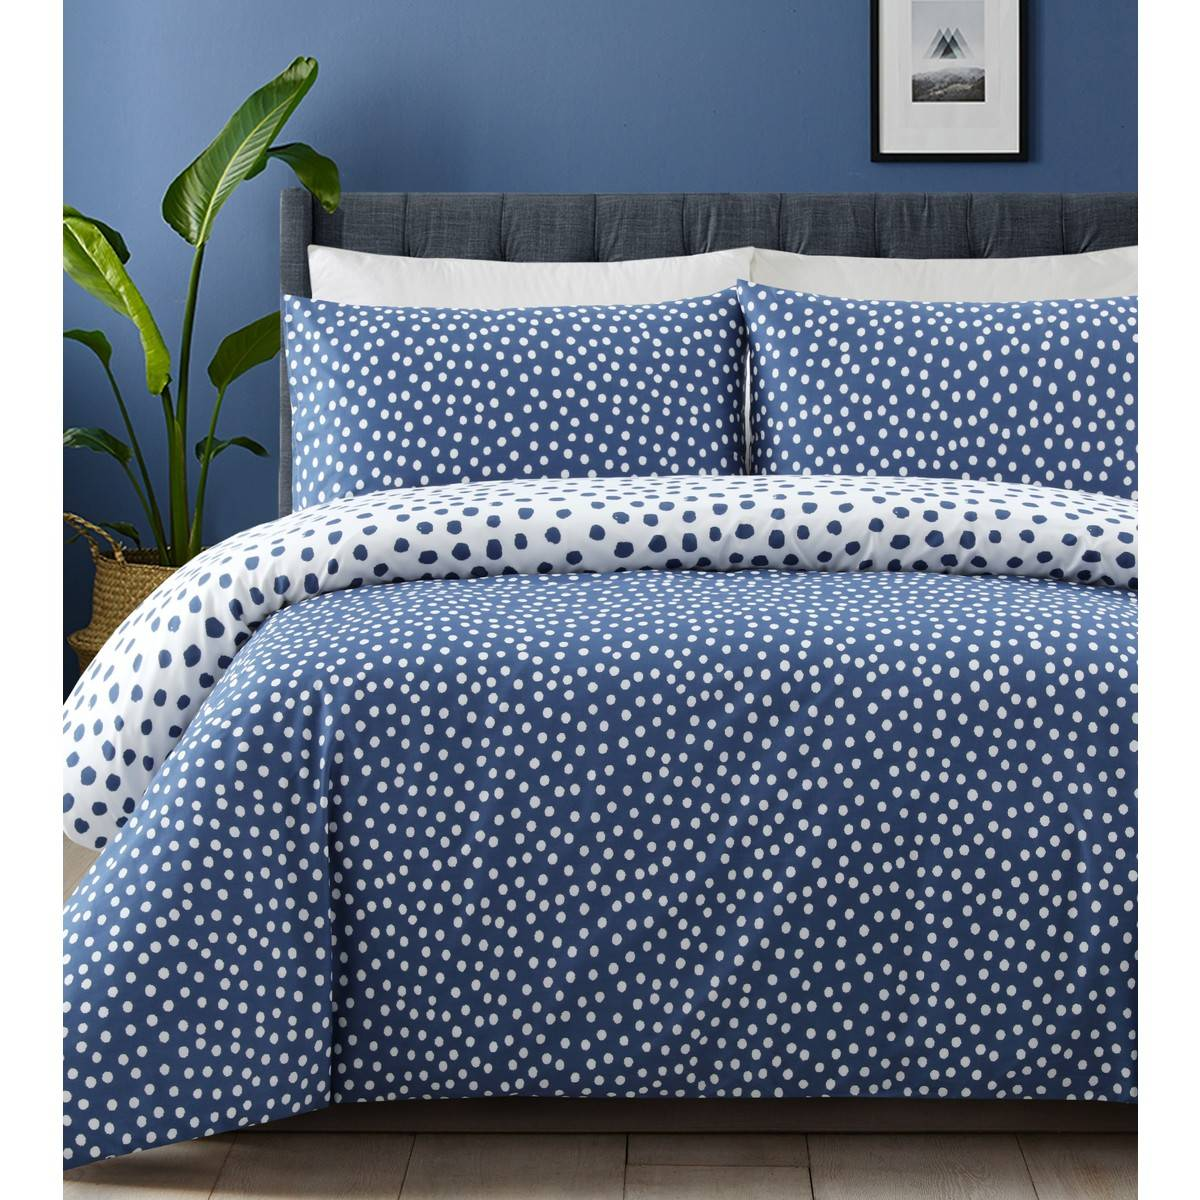 Big W Queen Quilt Covers Smart Value Quilt Cover Set Wintertide Big W